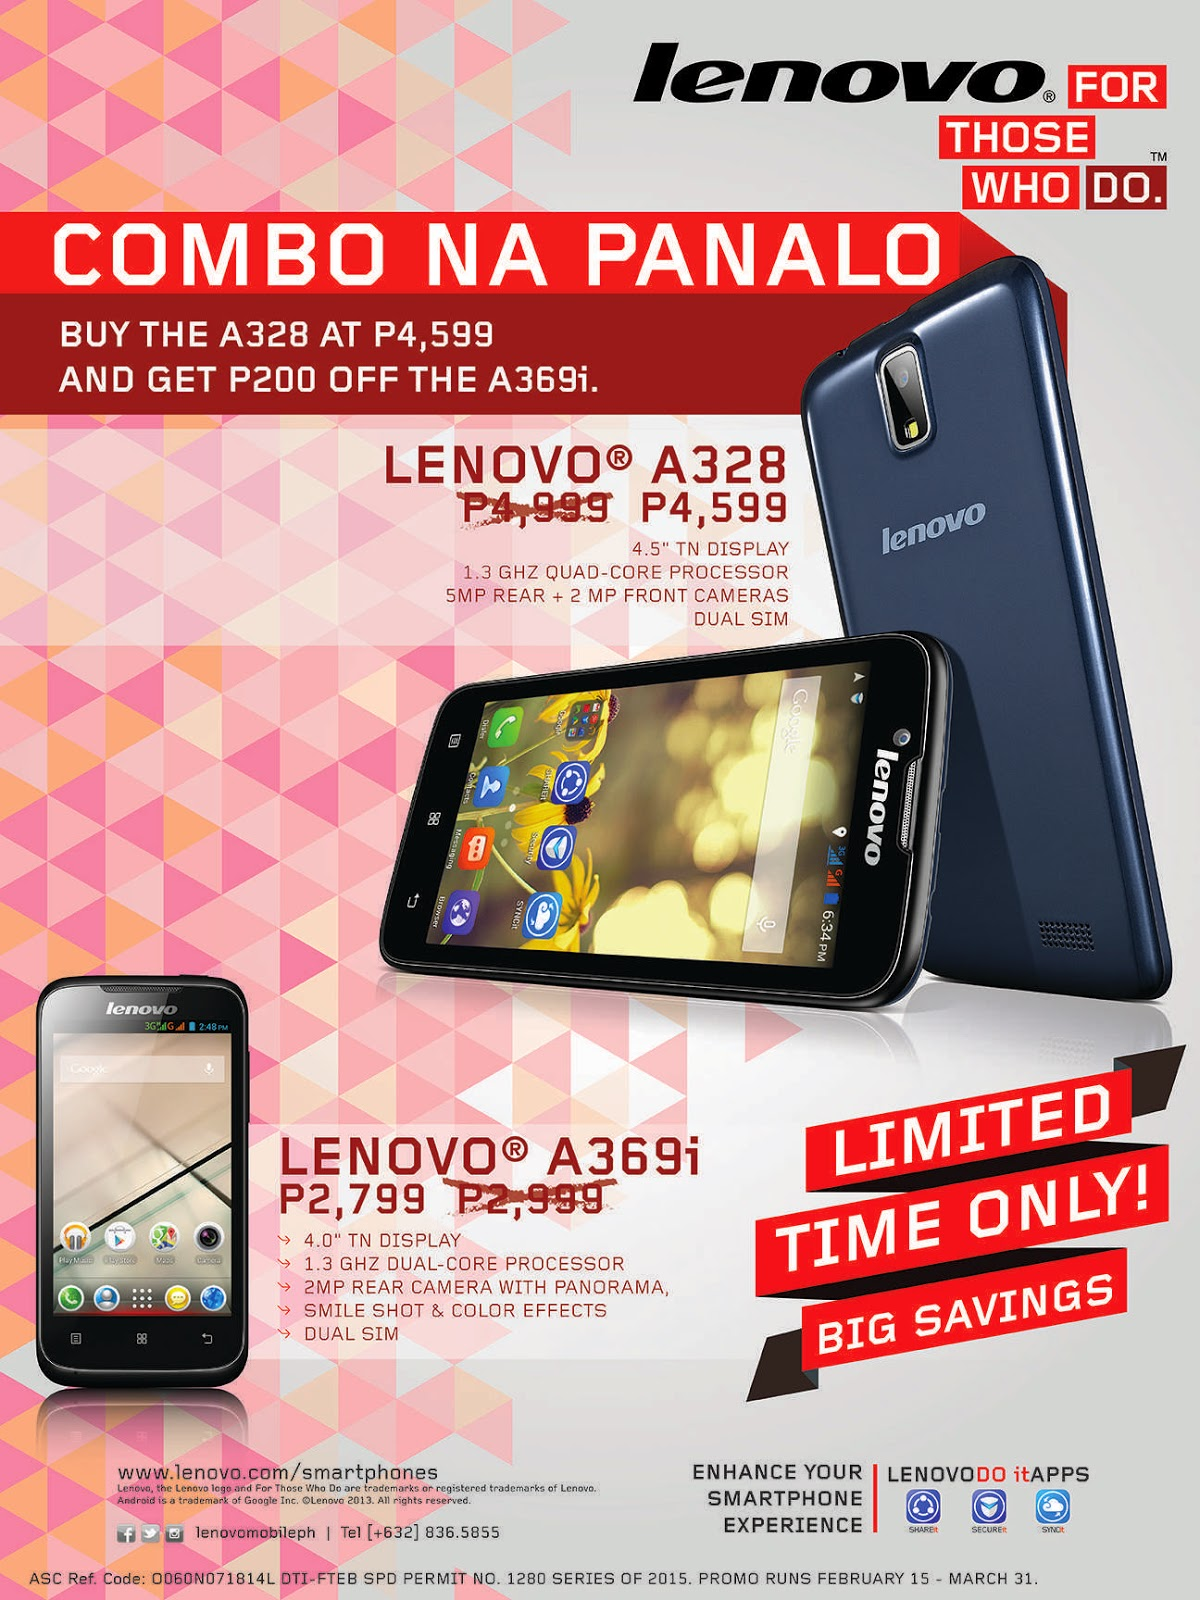 The Lenovo Mobile Price Off Promo